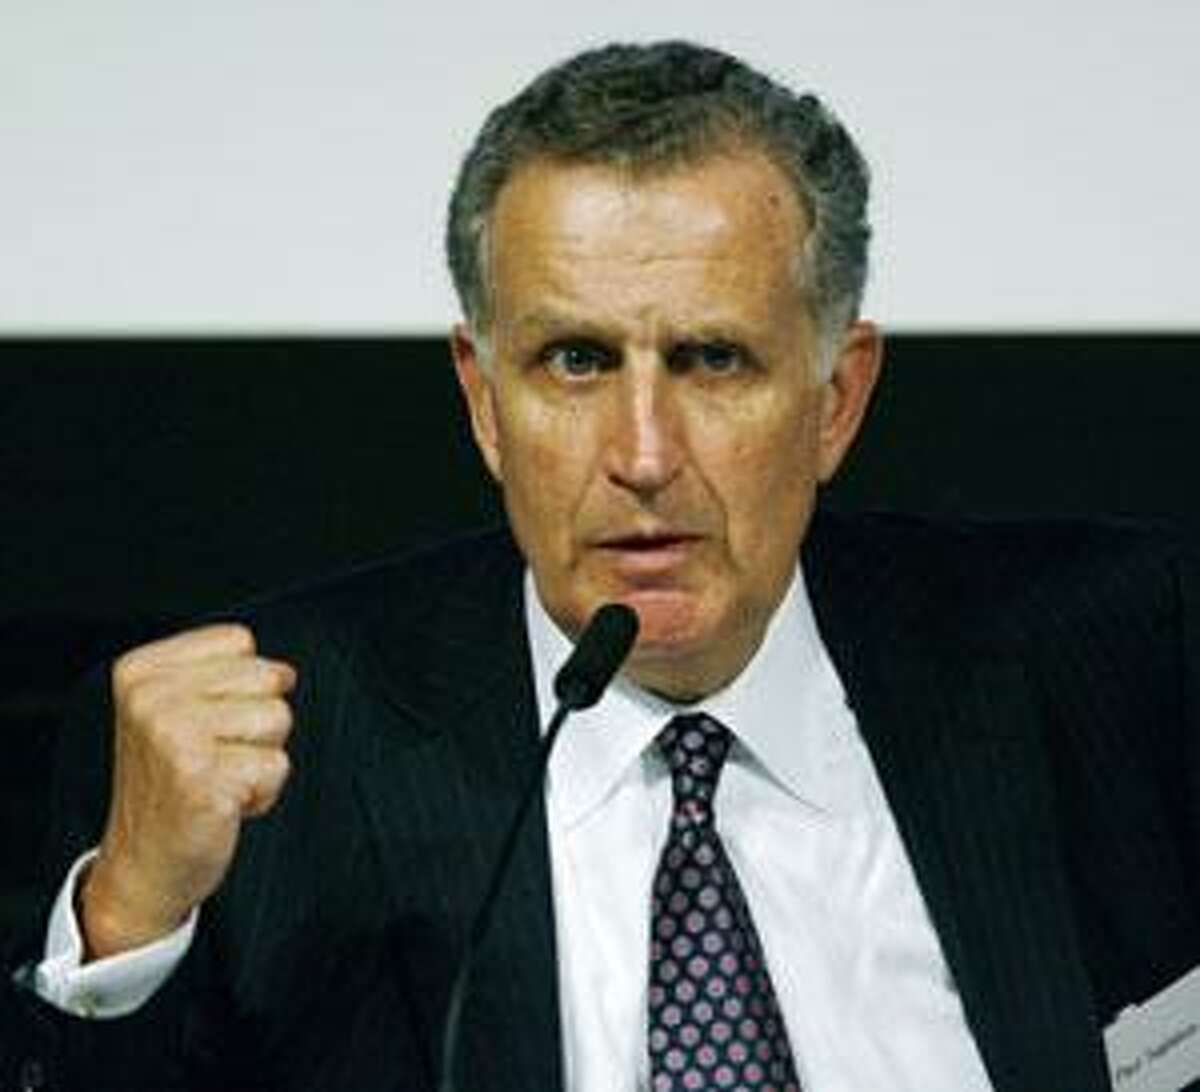 AP Former NFL commissioner Paul Tagliabue speaks at a news conference in Tokyo in this Sept. 11, 2008, file photo. He once oversaw one of America's most successful sports operations. Now, he's trying to find solutions for one of its most dysfunctional.